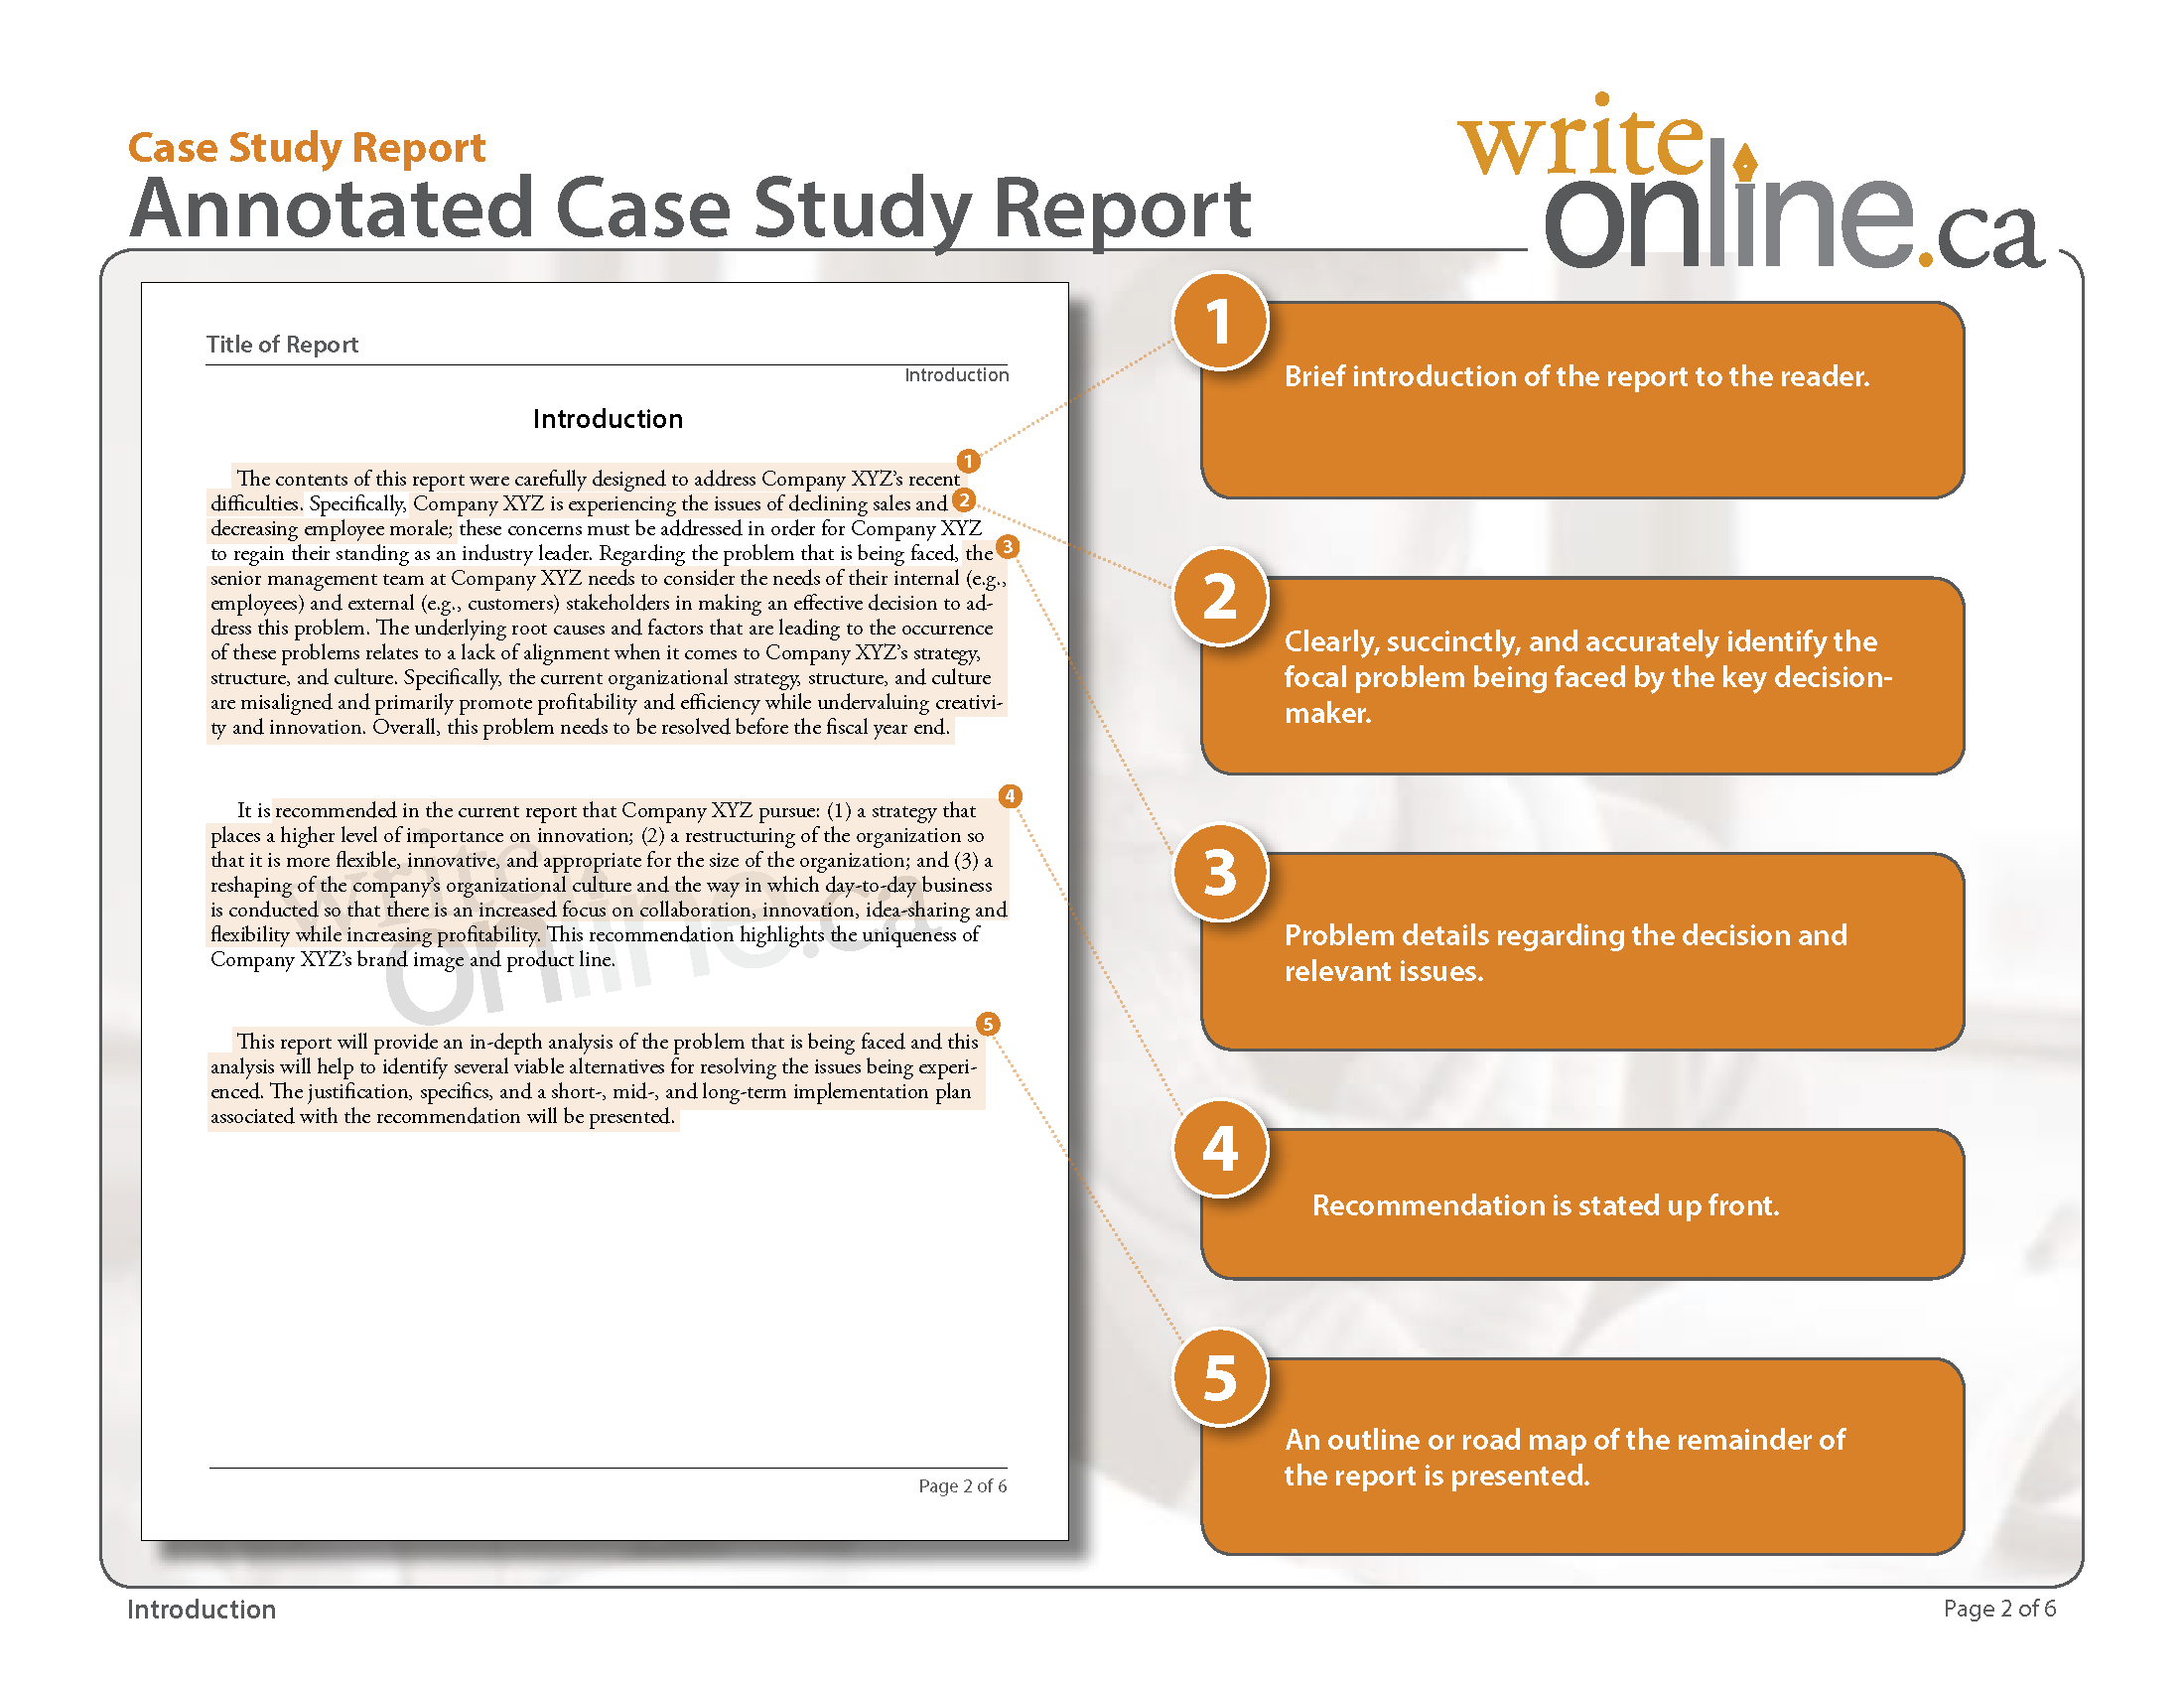 009 Research Paper Casestudy Annotatedfull Page 2 Component Of Archaicawful Pdf Parts Chapter 1 Quantitative Full